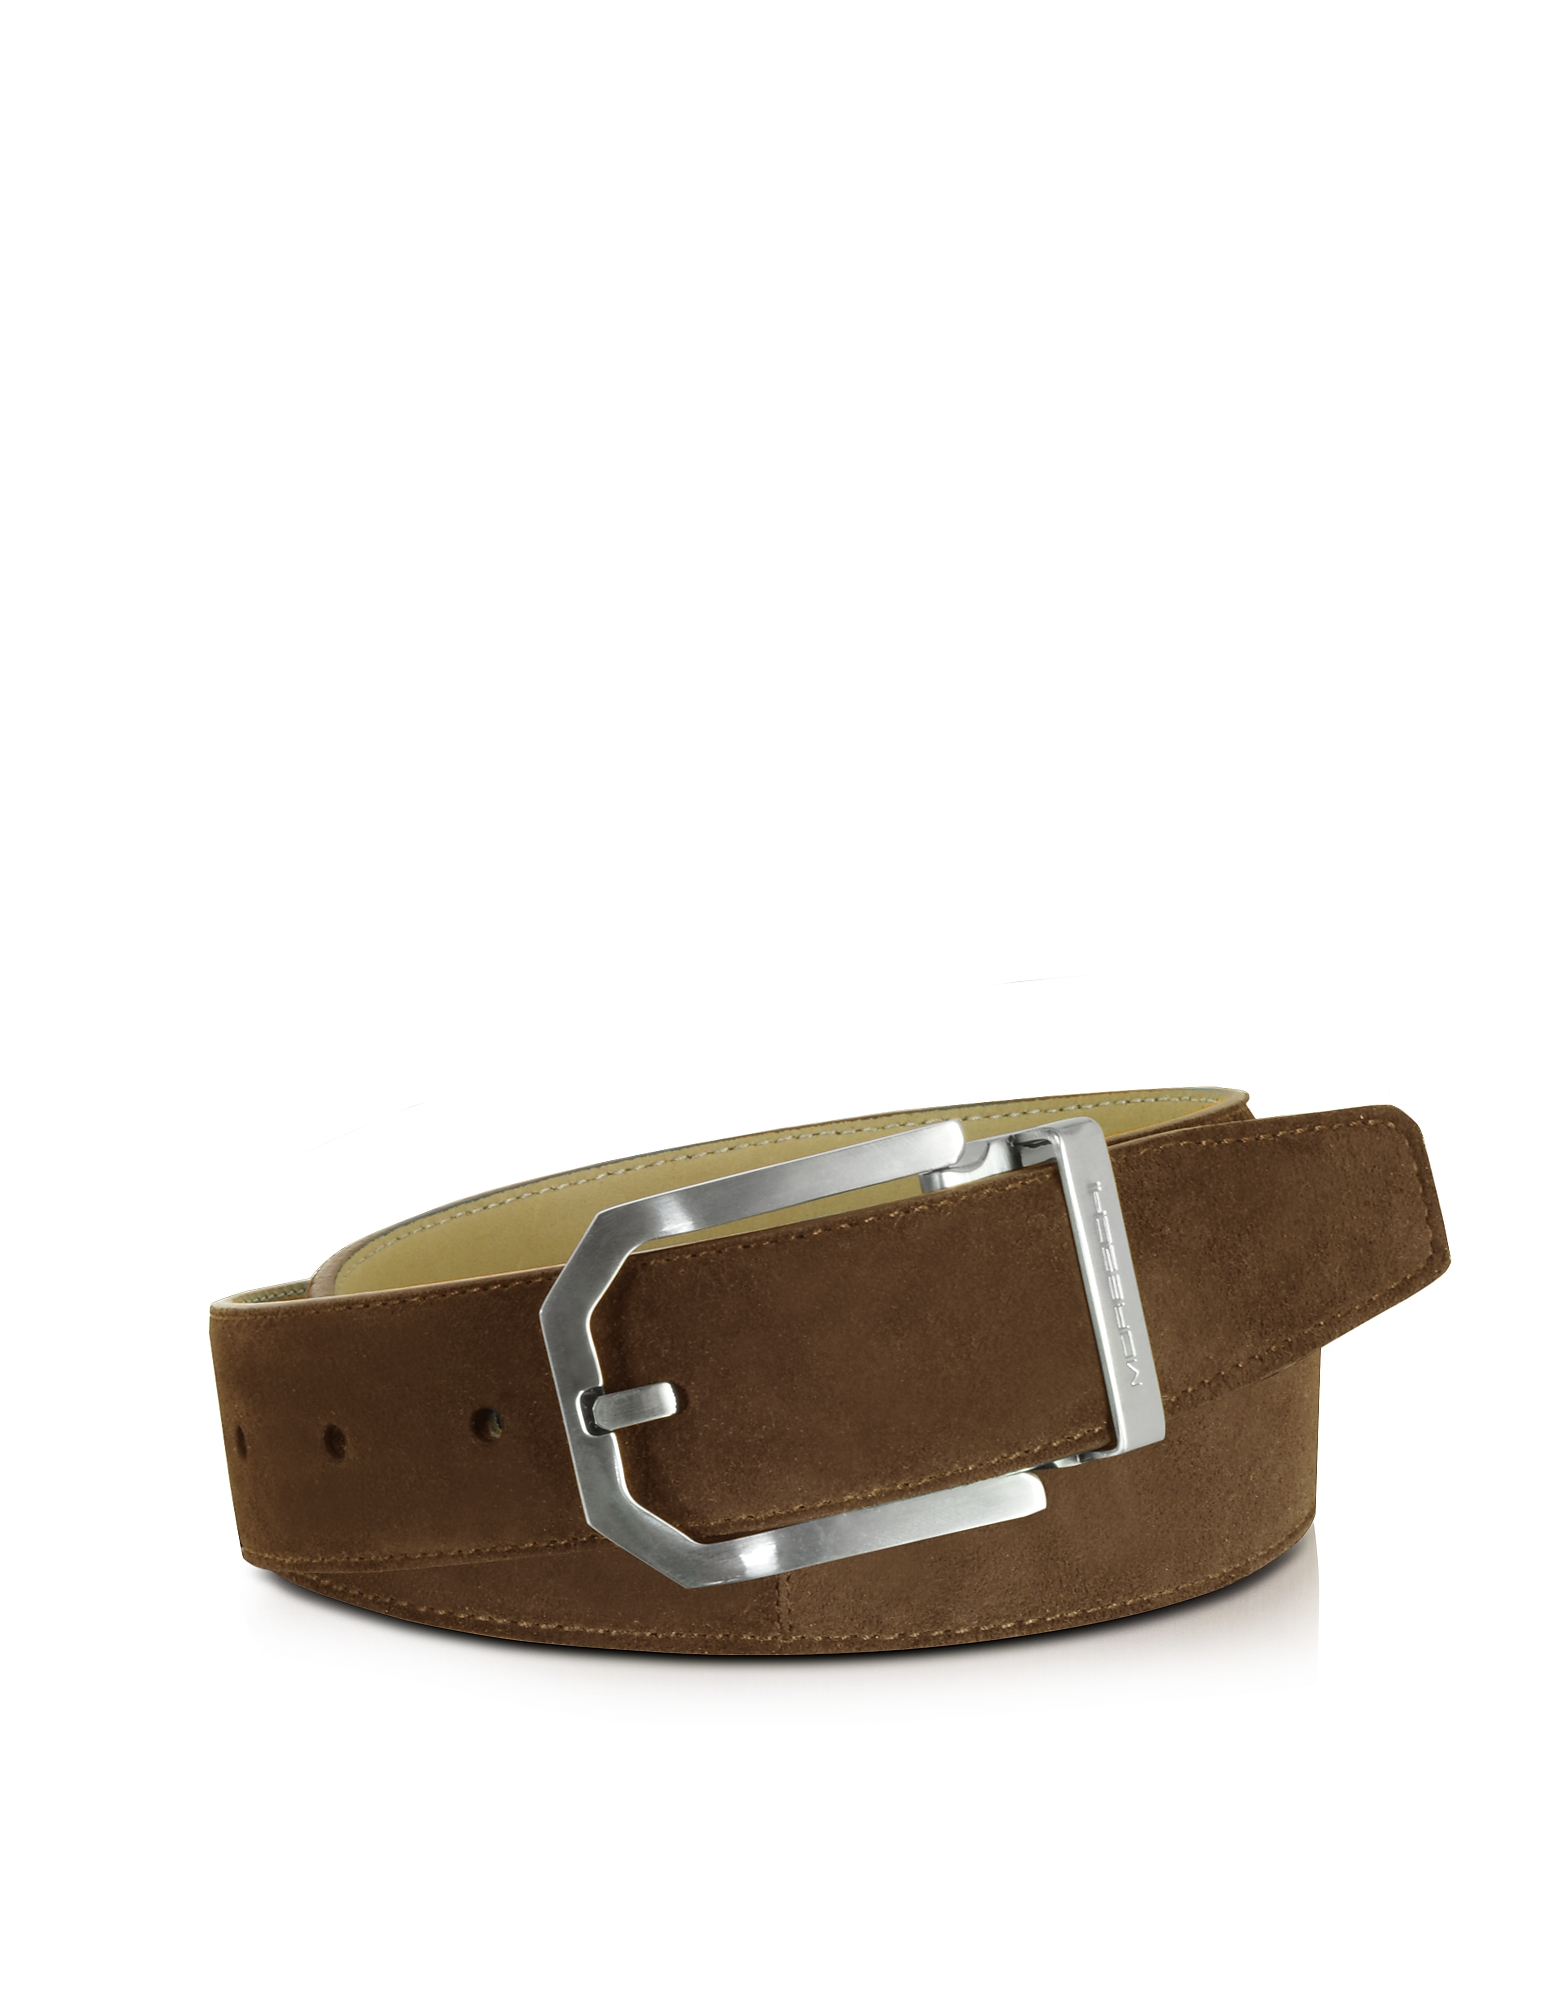 Moreschi Men's Belts, Monterey Brown Suede Belt